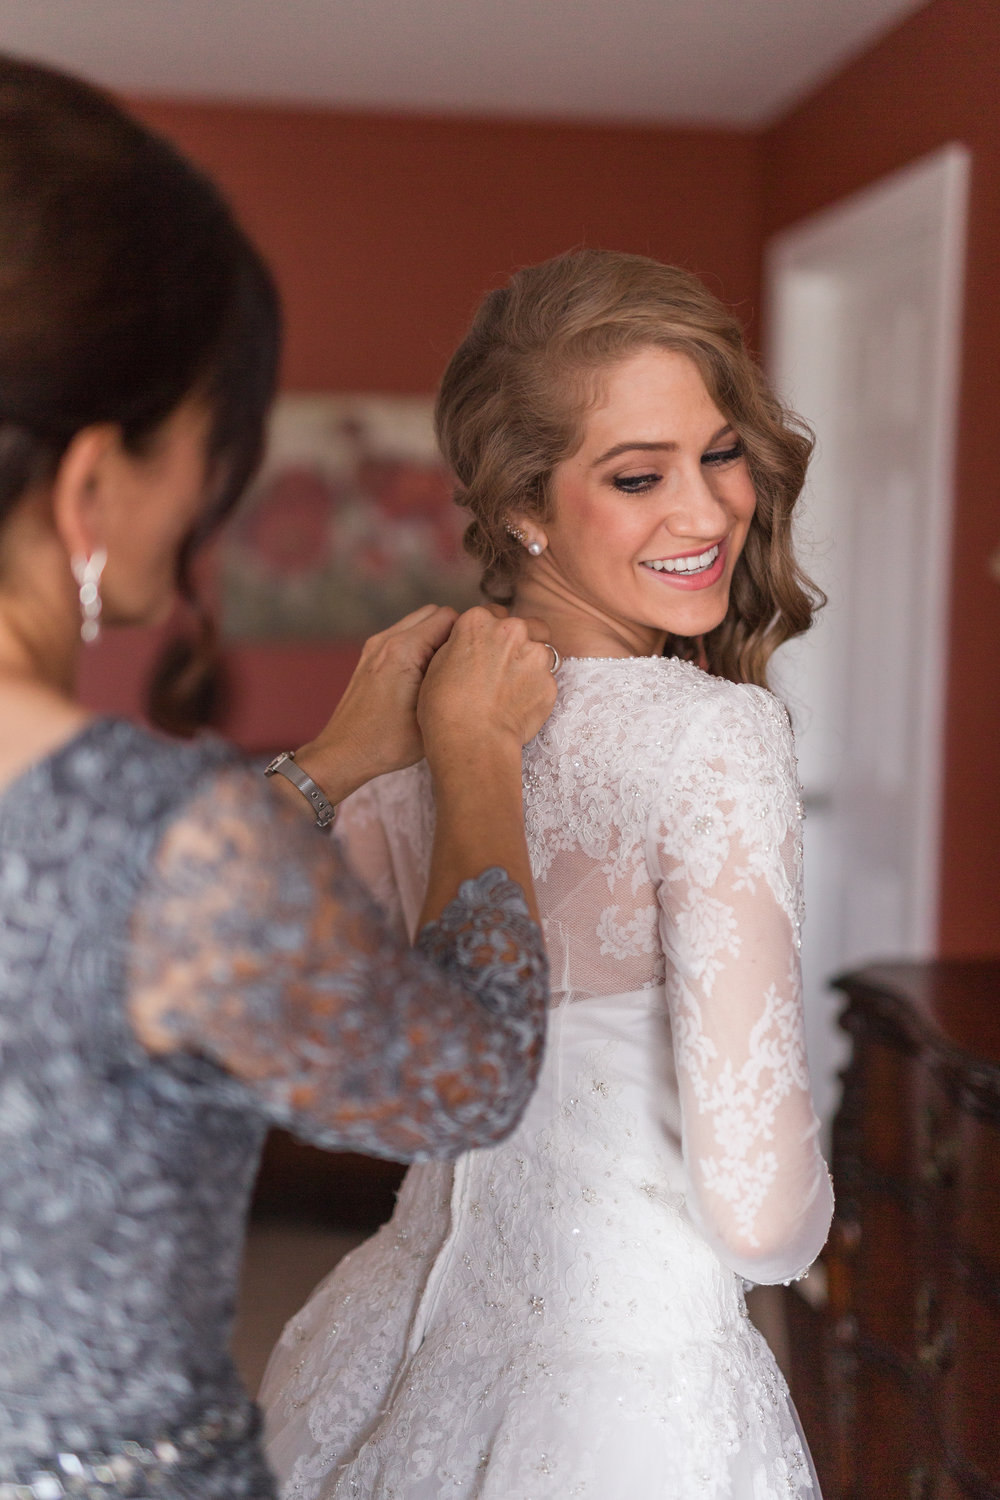 How to have fun at your wedding || Getting Ready Room || Lynchburg, VA Wedding Photographer